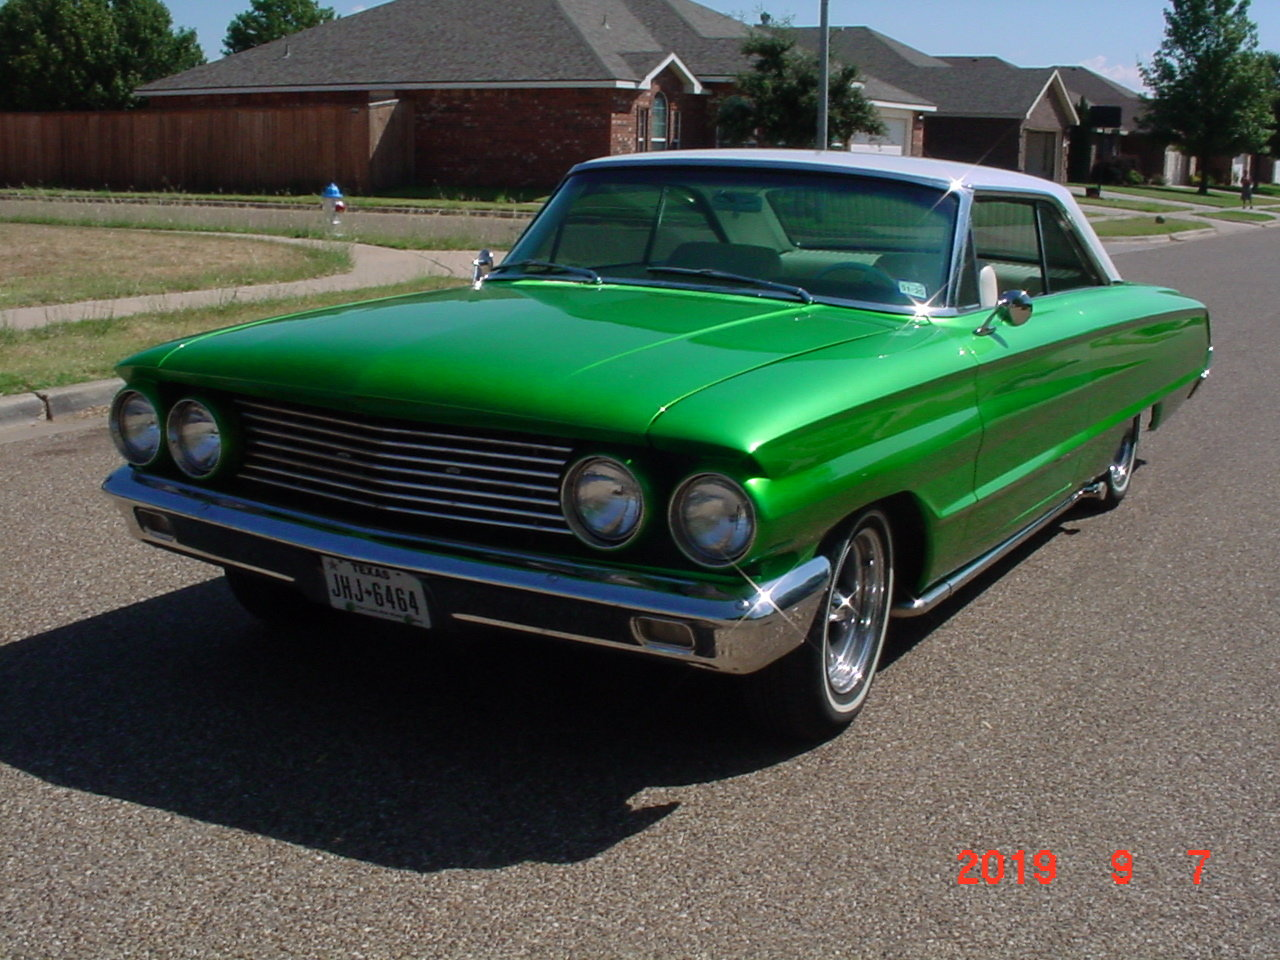 1964 Ford Galaxie 500 FULL CUSTOM For Sale (picture 1 of 6)